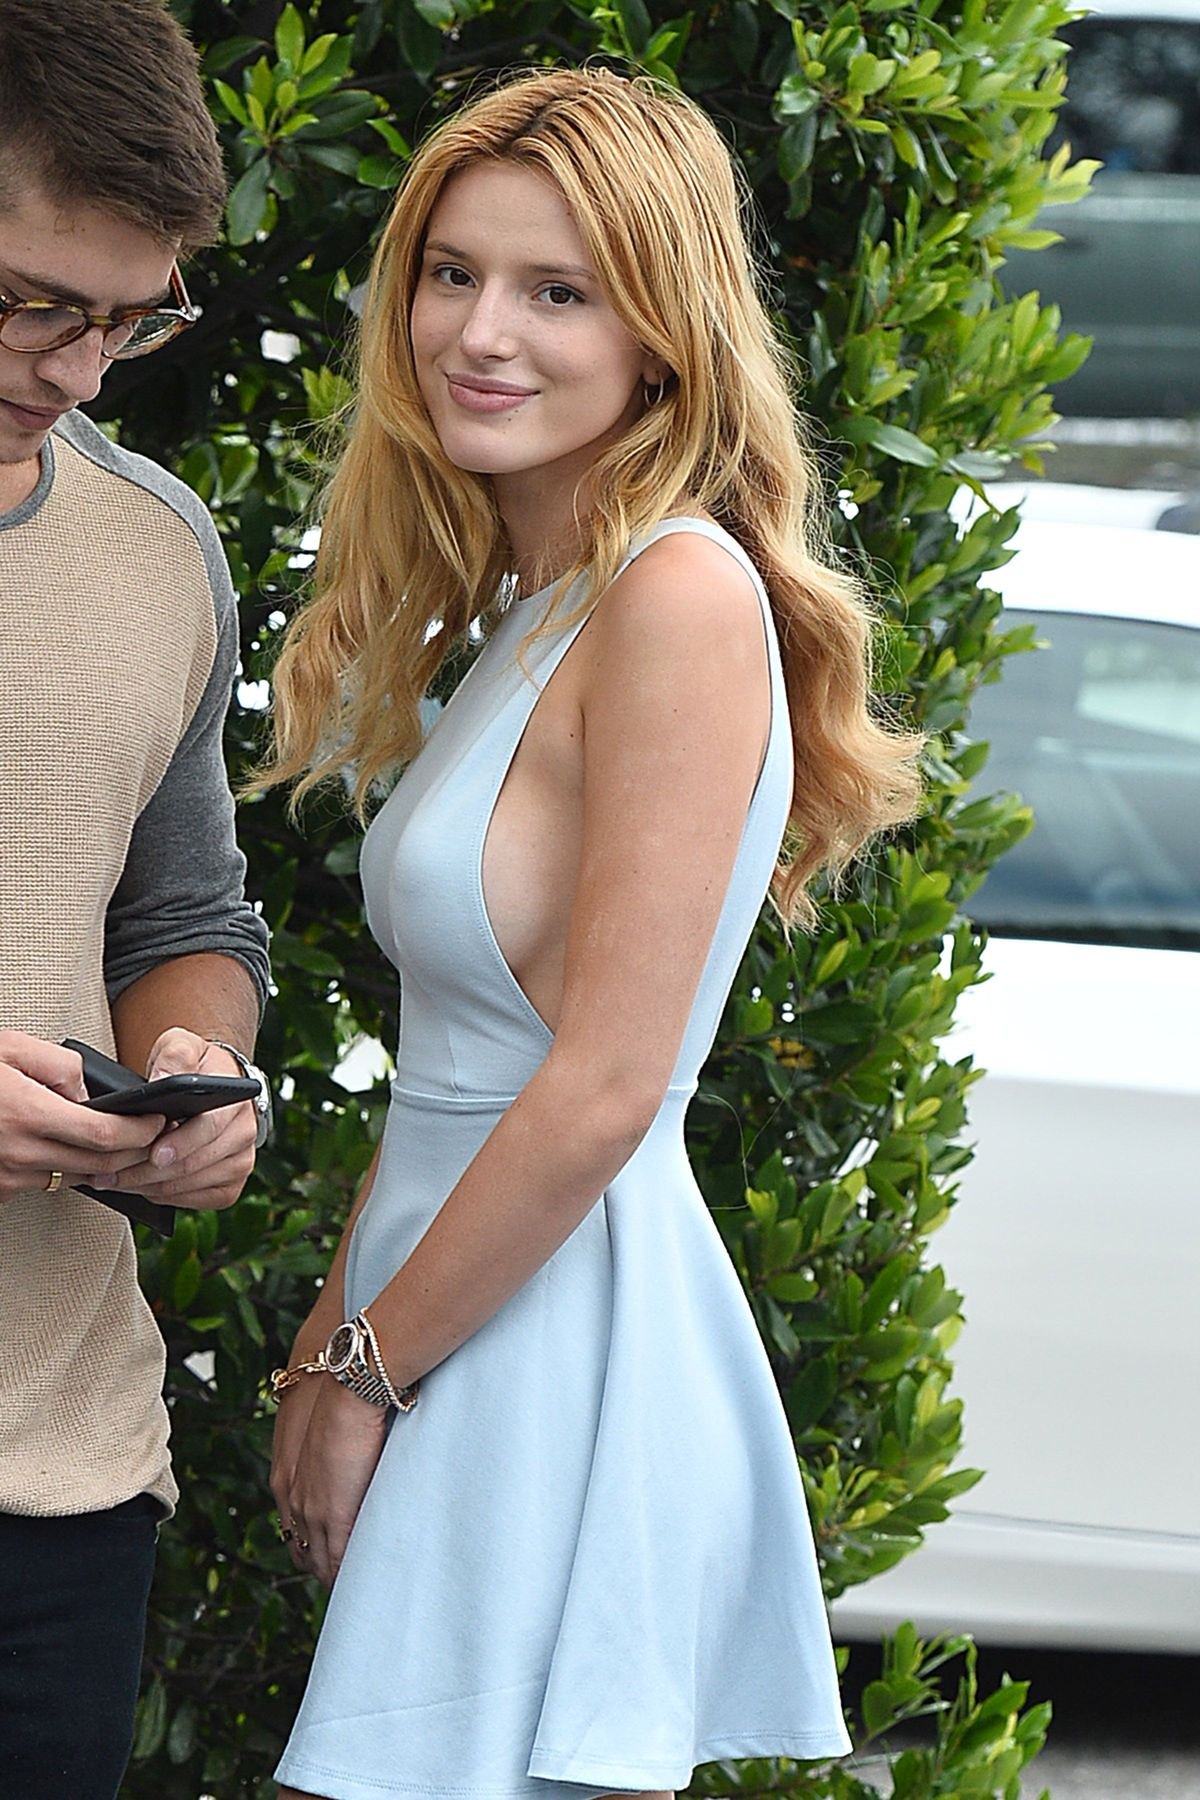 Bella Thorne Braless 17 TheFappening.nu